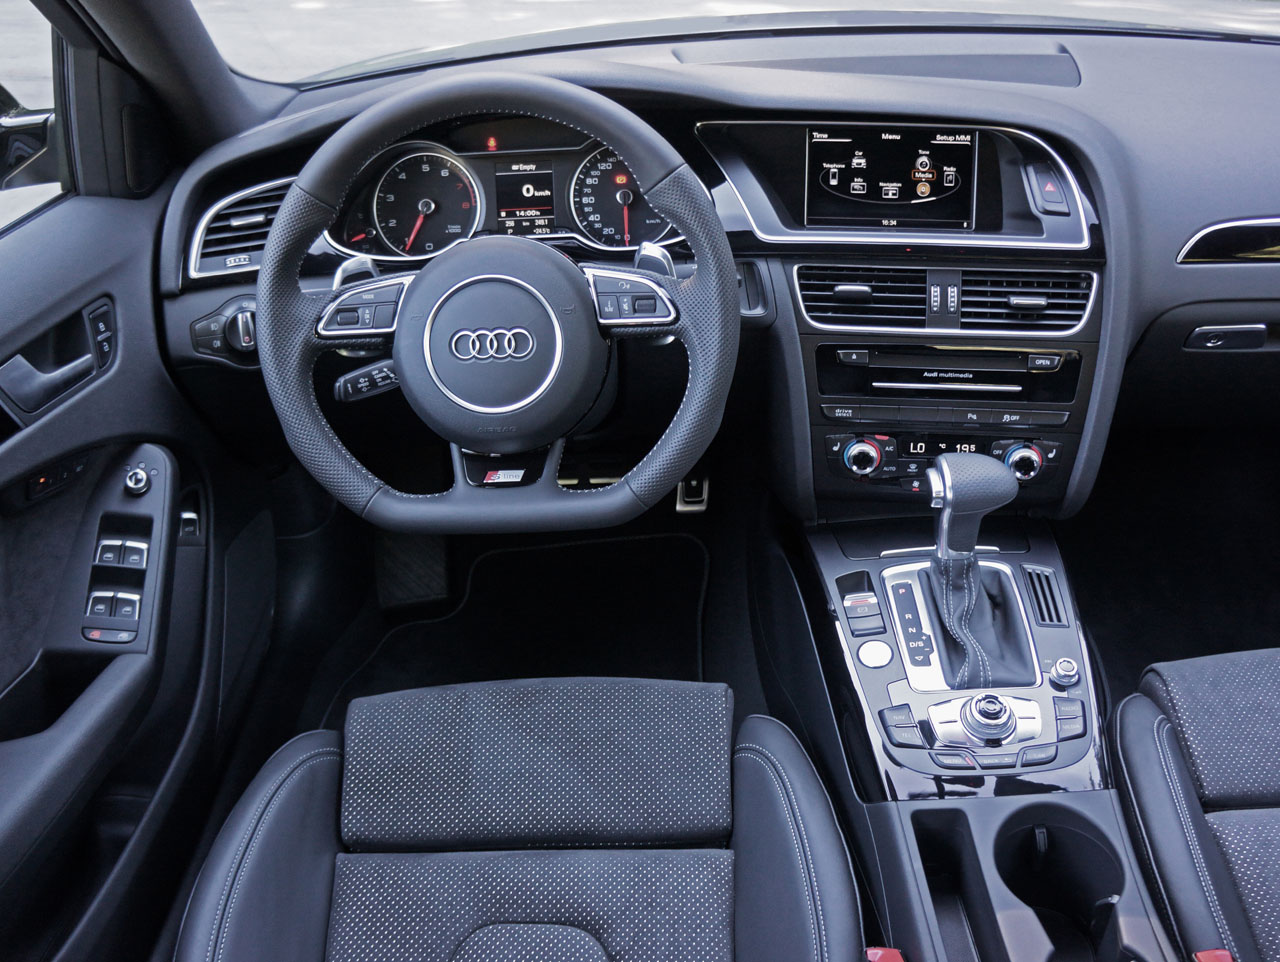 2015 Audi A4 2 0 TFSI Quattro S line Road Test Review